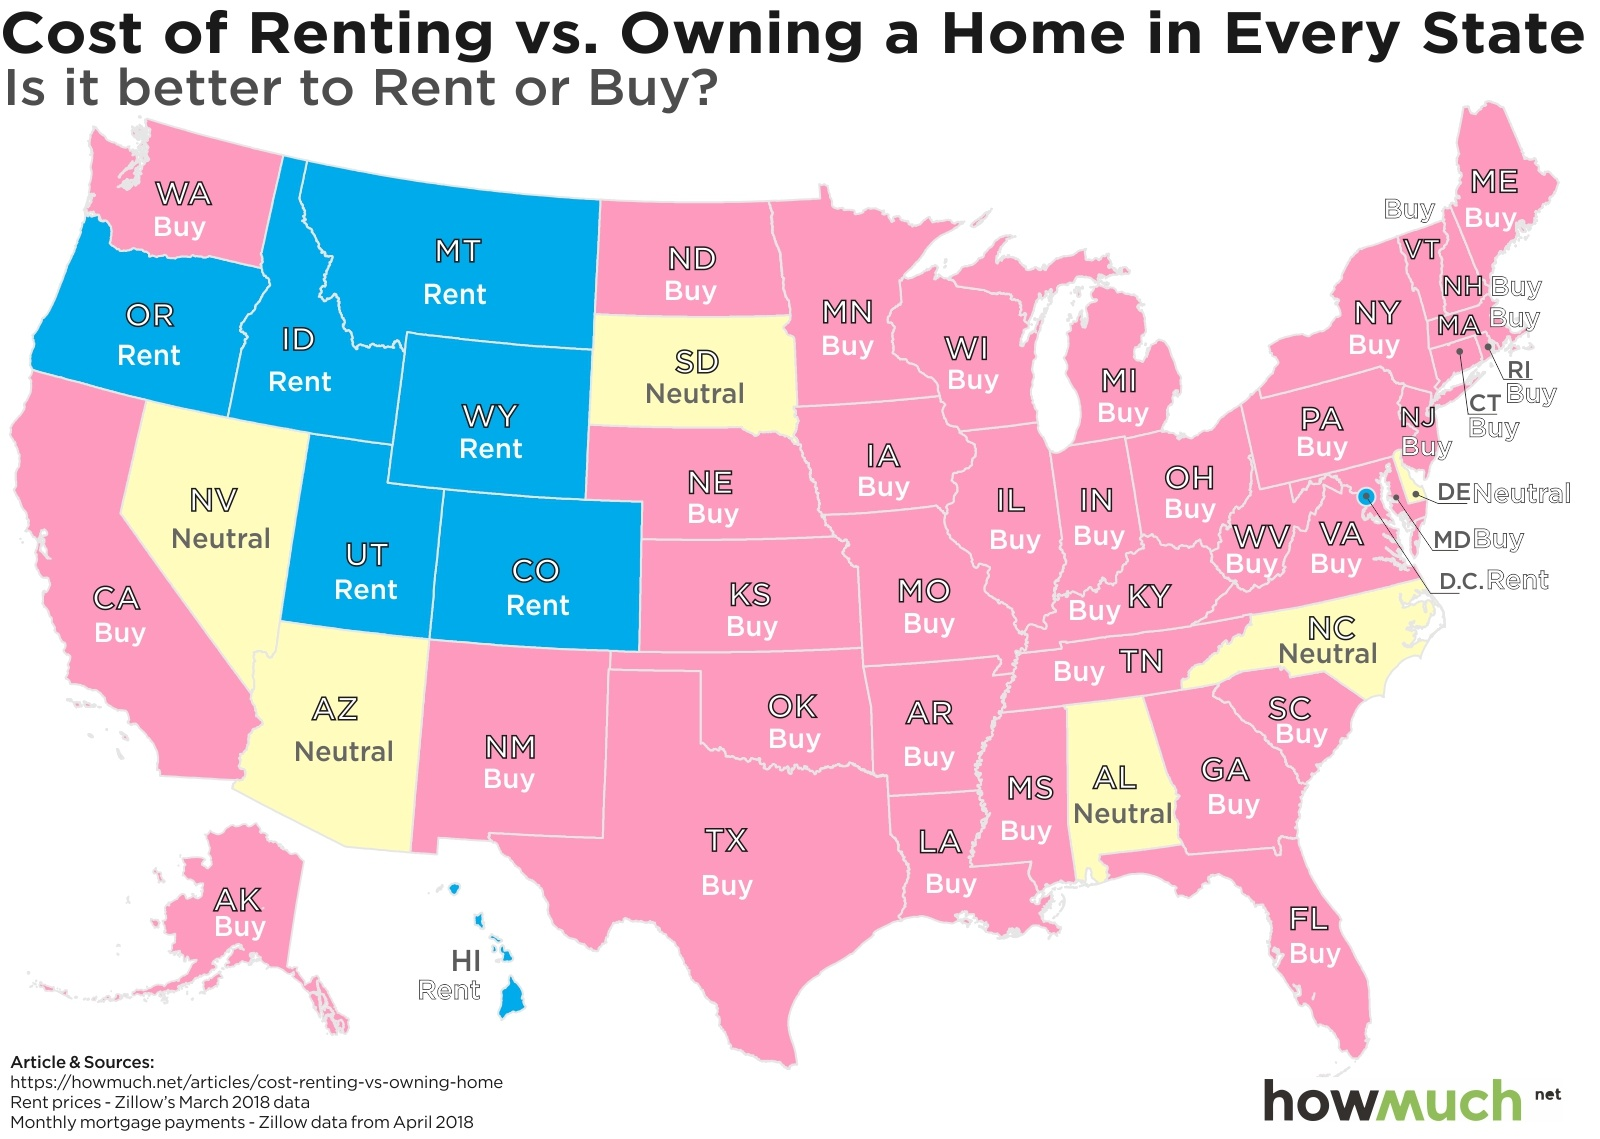 The Cost of Renting vs. Buying a Home in Every State Zillow Map on pathfinder rpg maps, spanish speaking maps, fictional maps, groundwater maps, expedia maps, high quality maps, pictometry maps, jones soda, microsoft maps, teaching maps, google maps, social studies maps, aerial maps, alternate history maps, civilization 5 maps, geoportal maps, walmart maps, local maps, mapquest maps, tumblr maps, yandex maps,